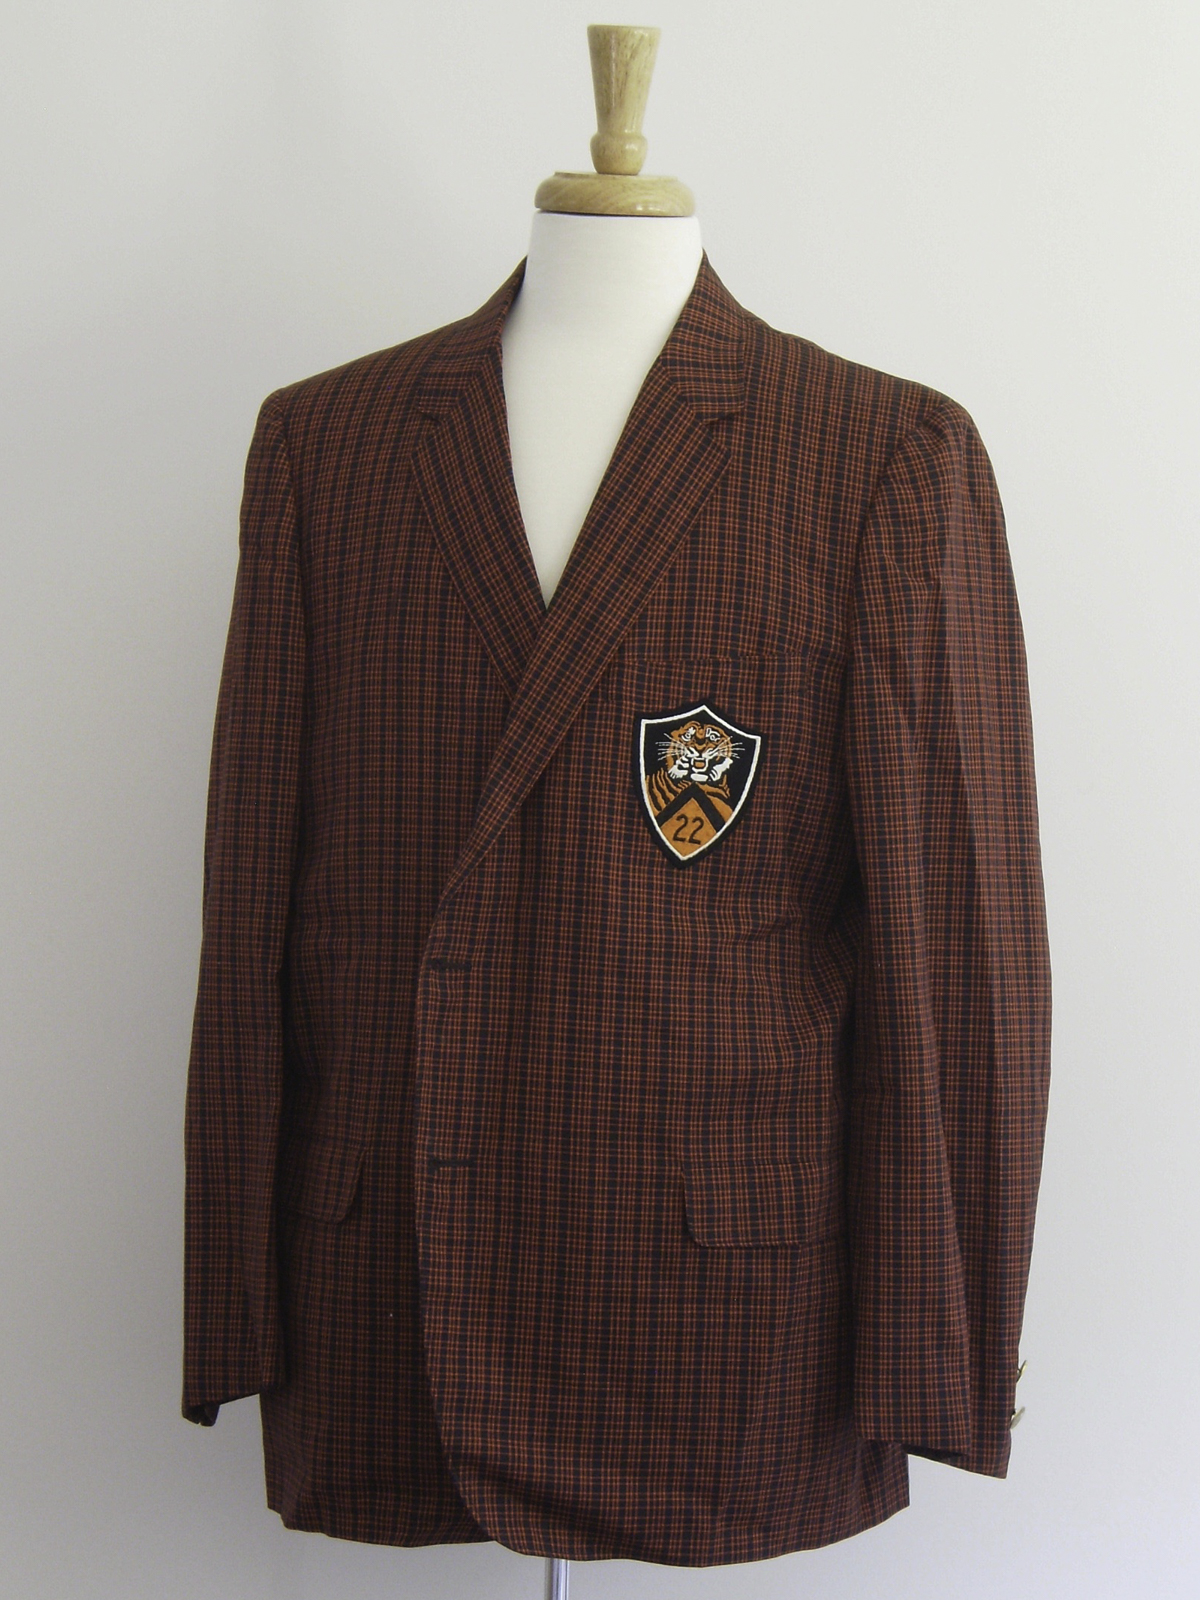 Reunion Jacket 1922 Variation 3 Front